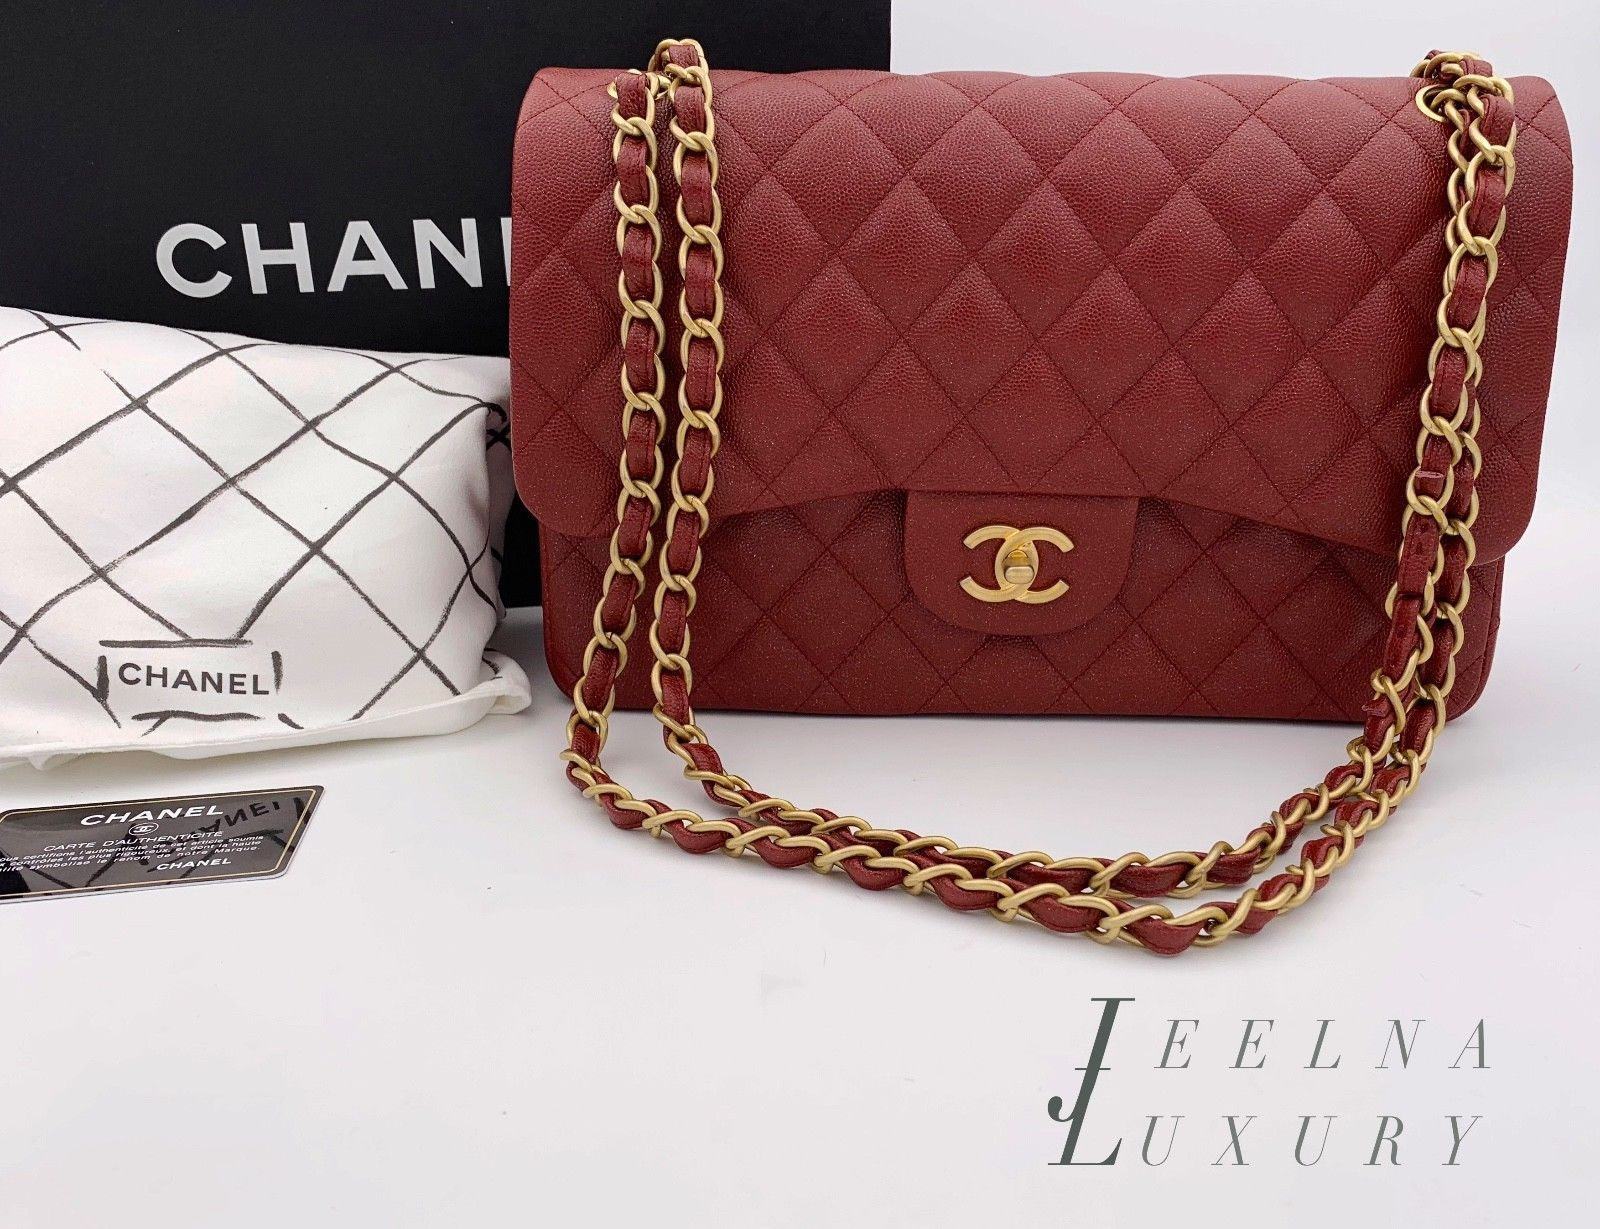 7bd463408d4 Auth Chanel 2018 Caviar Pearly Iridescent Red Burgundy Double Flap Jumbo  Bag GHW